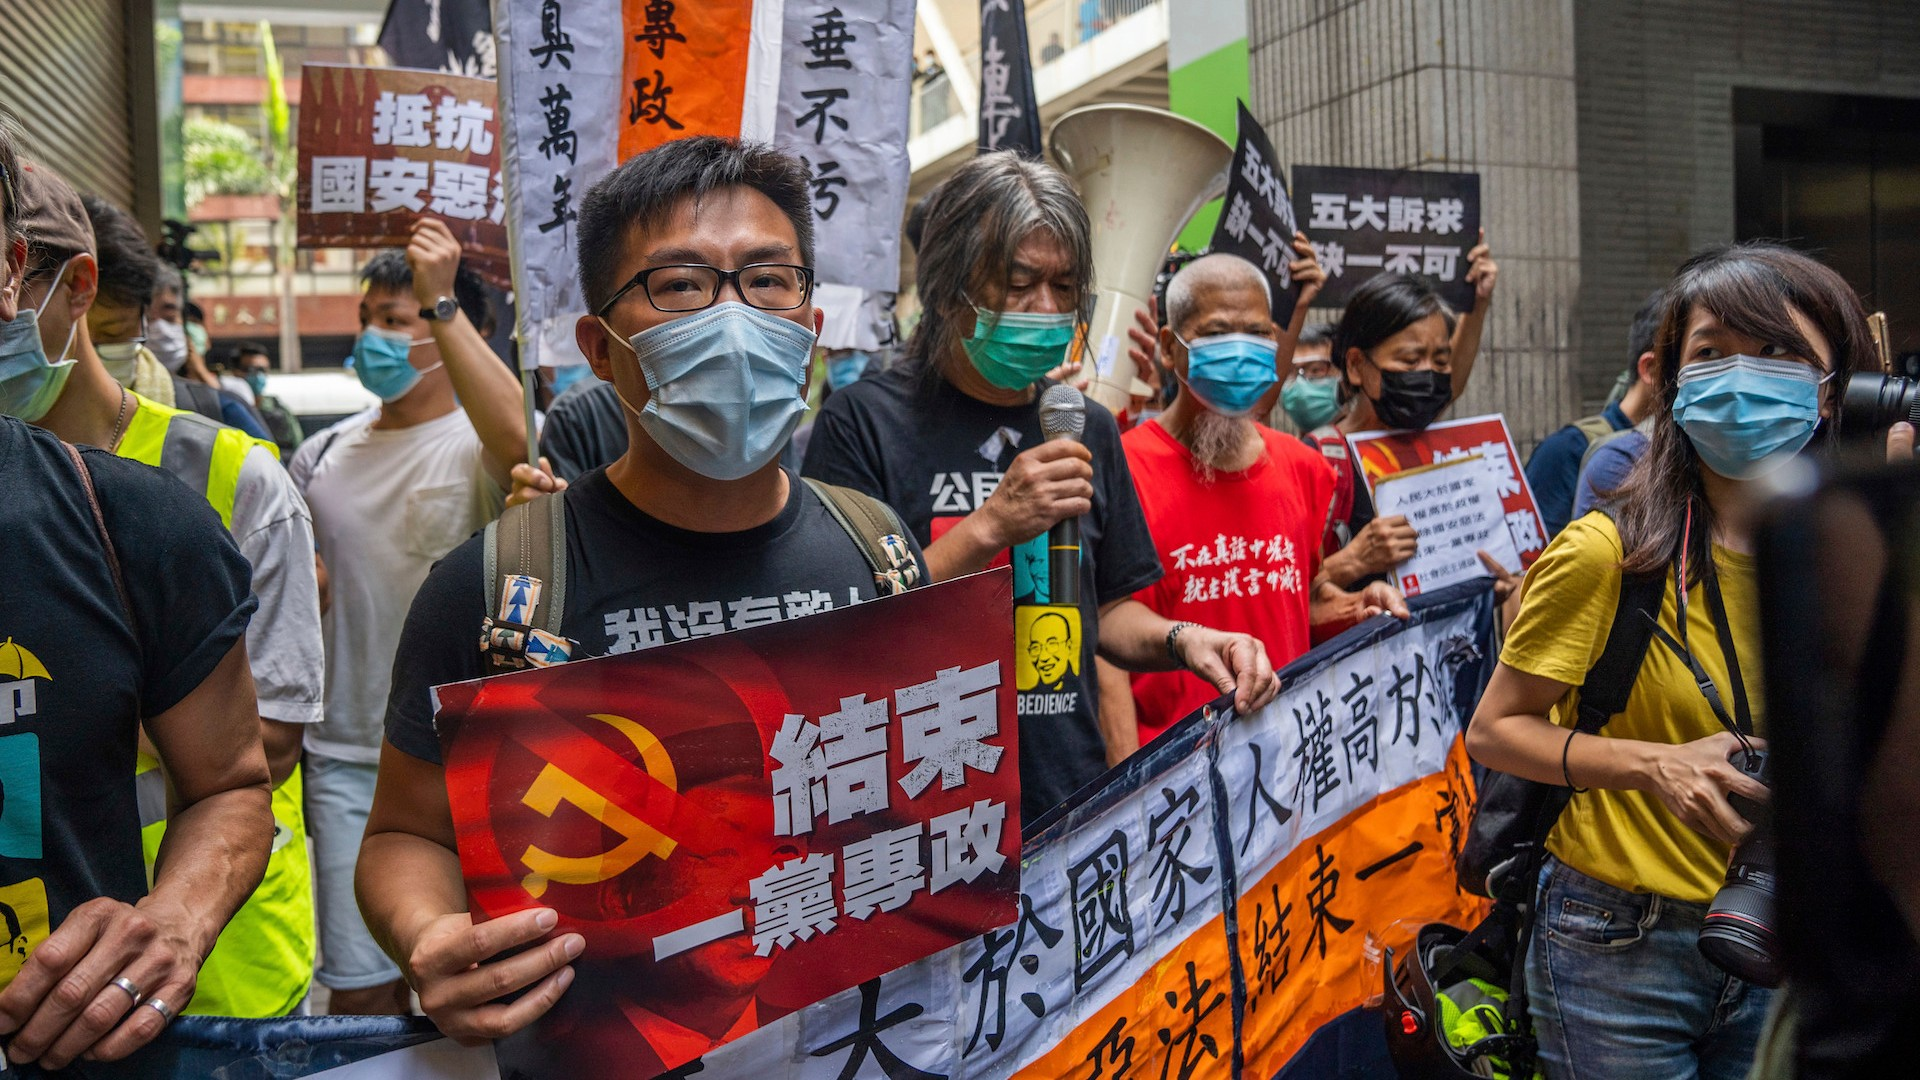 , China's Great Firewall of Censorship Is Already Going Up Around Hong Kong, Saubio Making Wealth